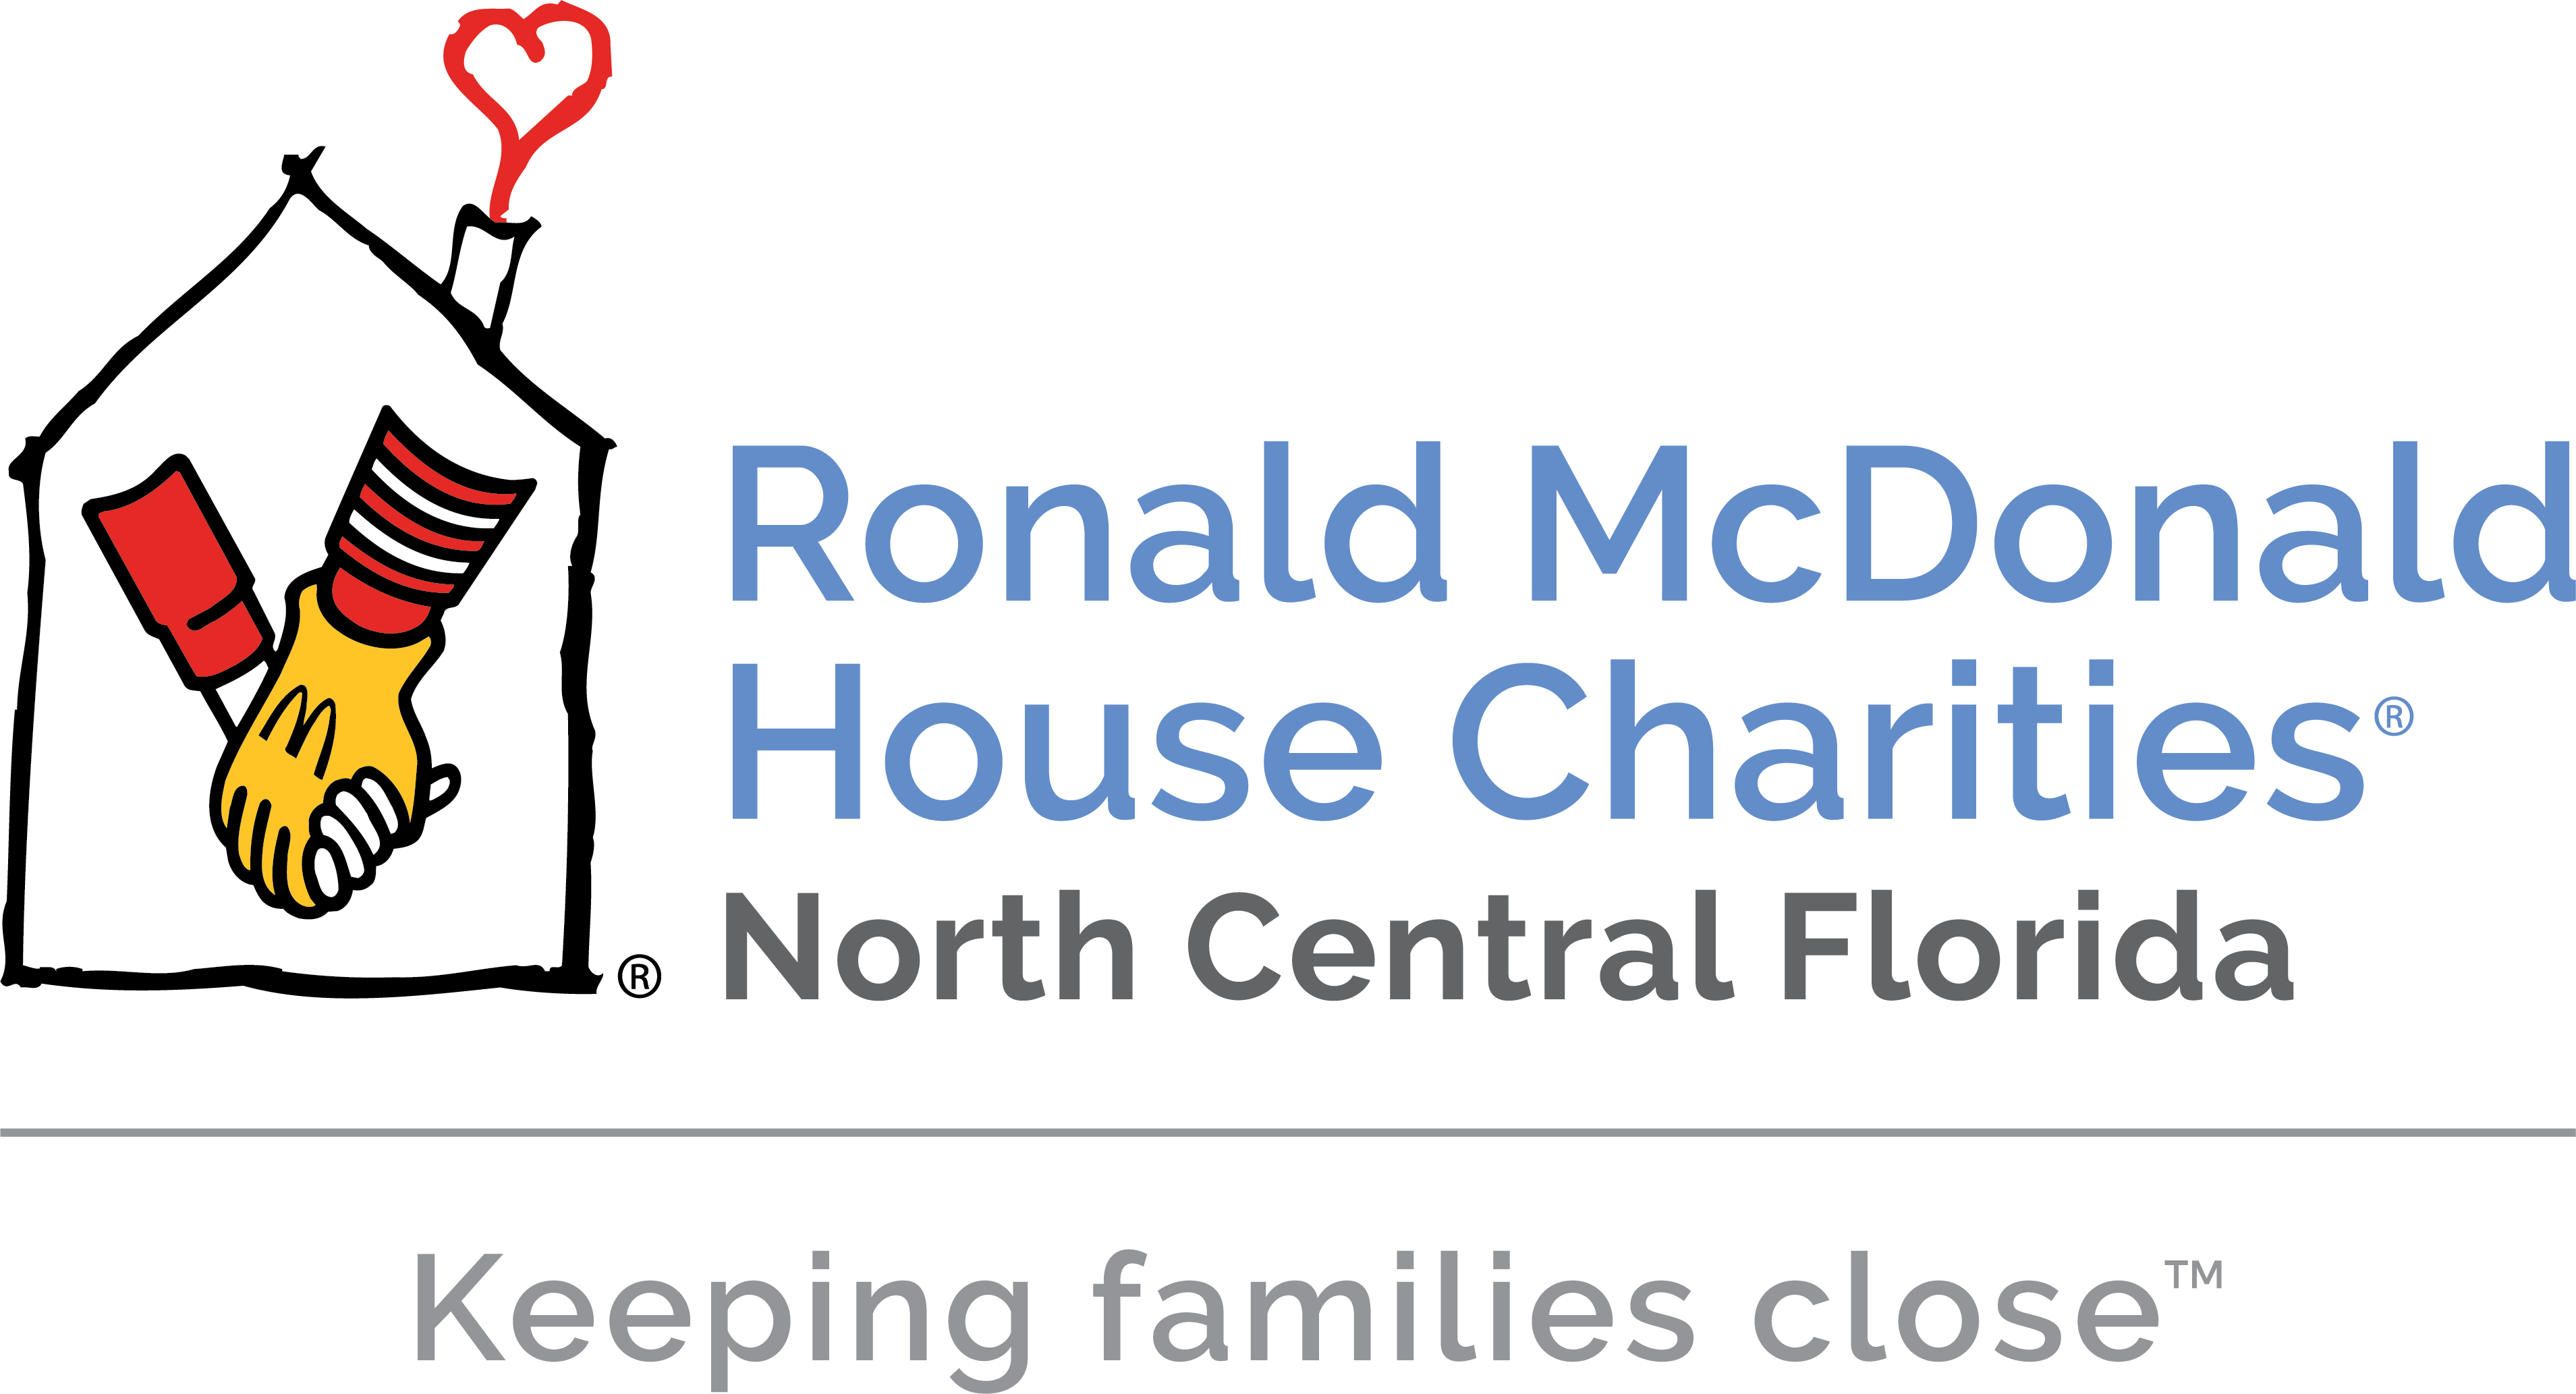 Ronald McDonald House Charities of North Central Florida Logo